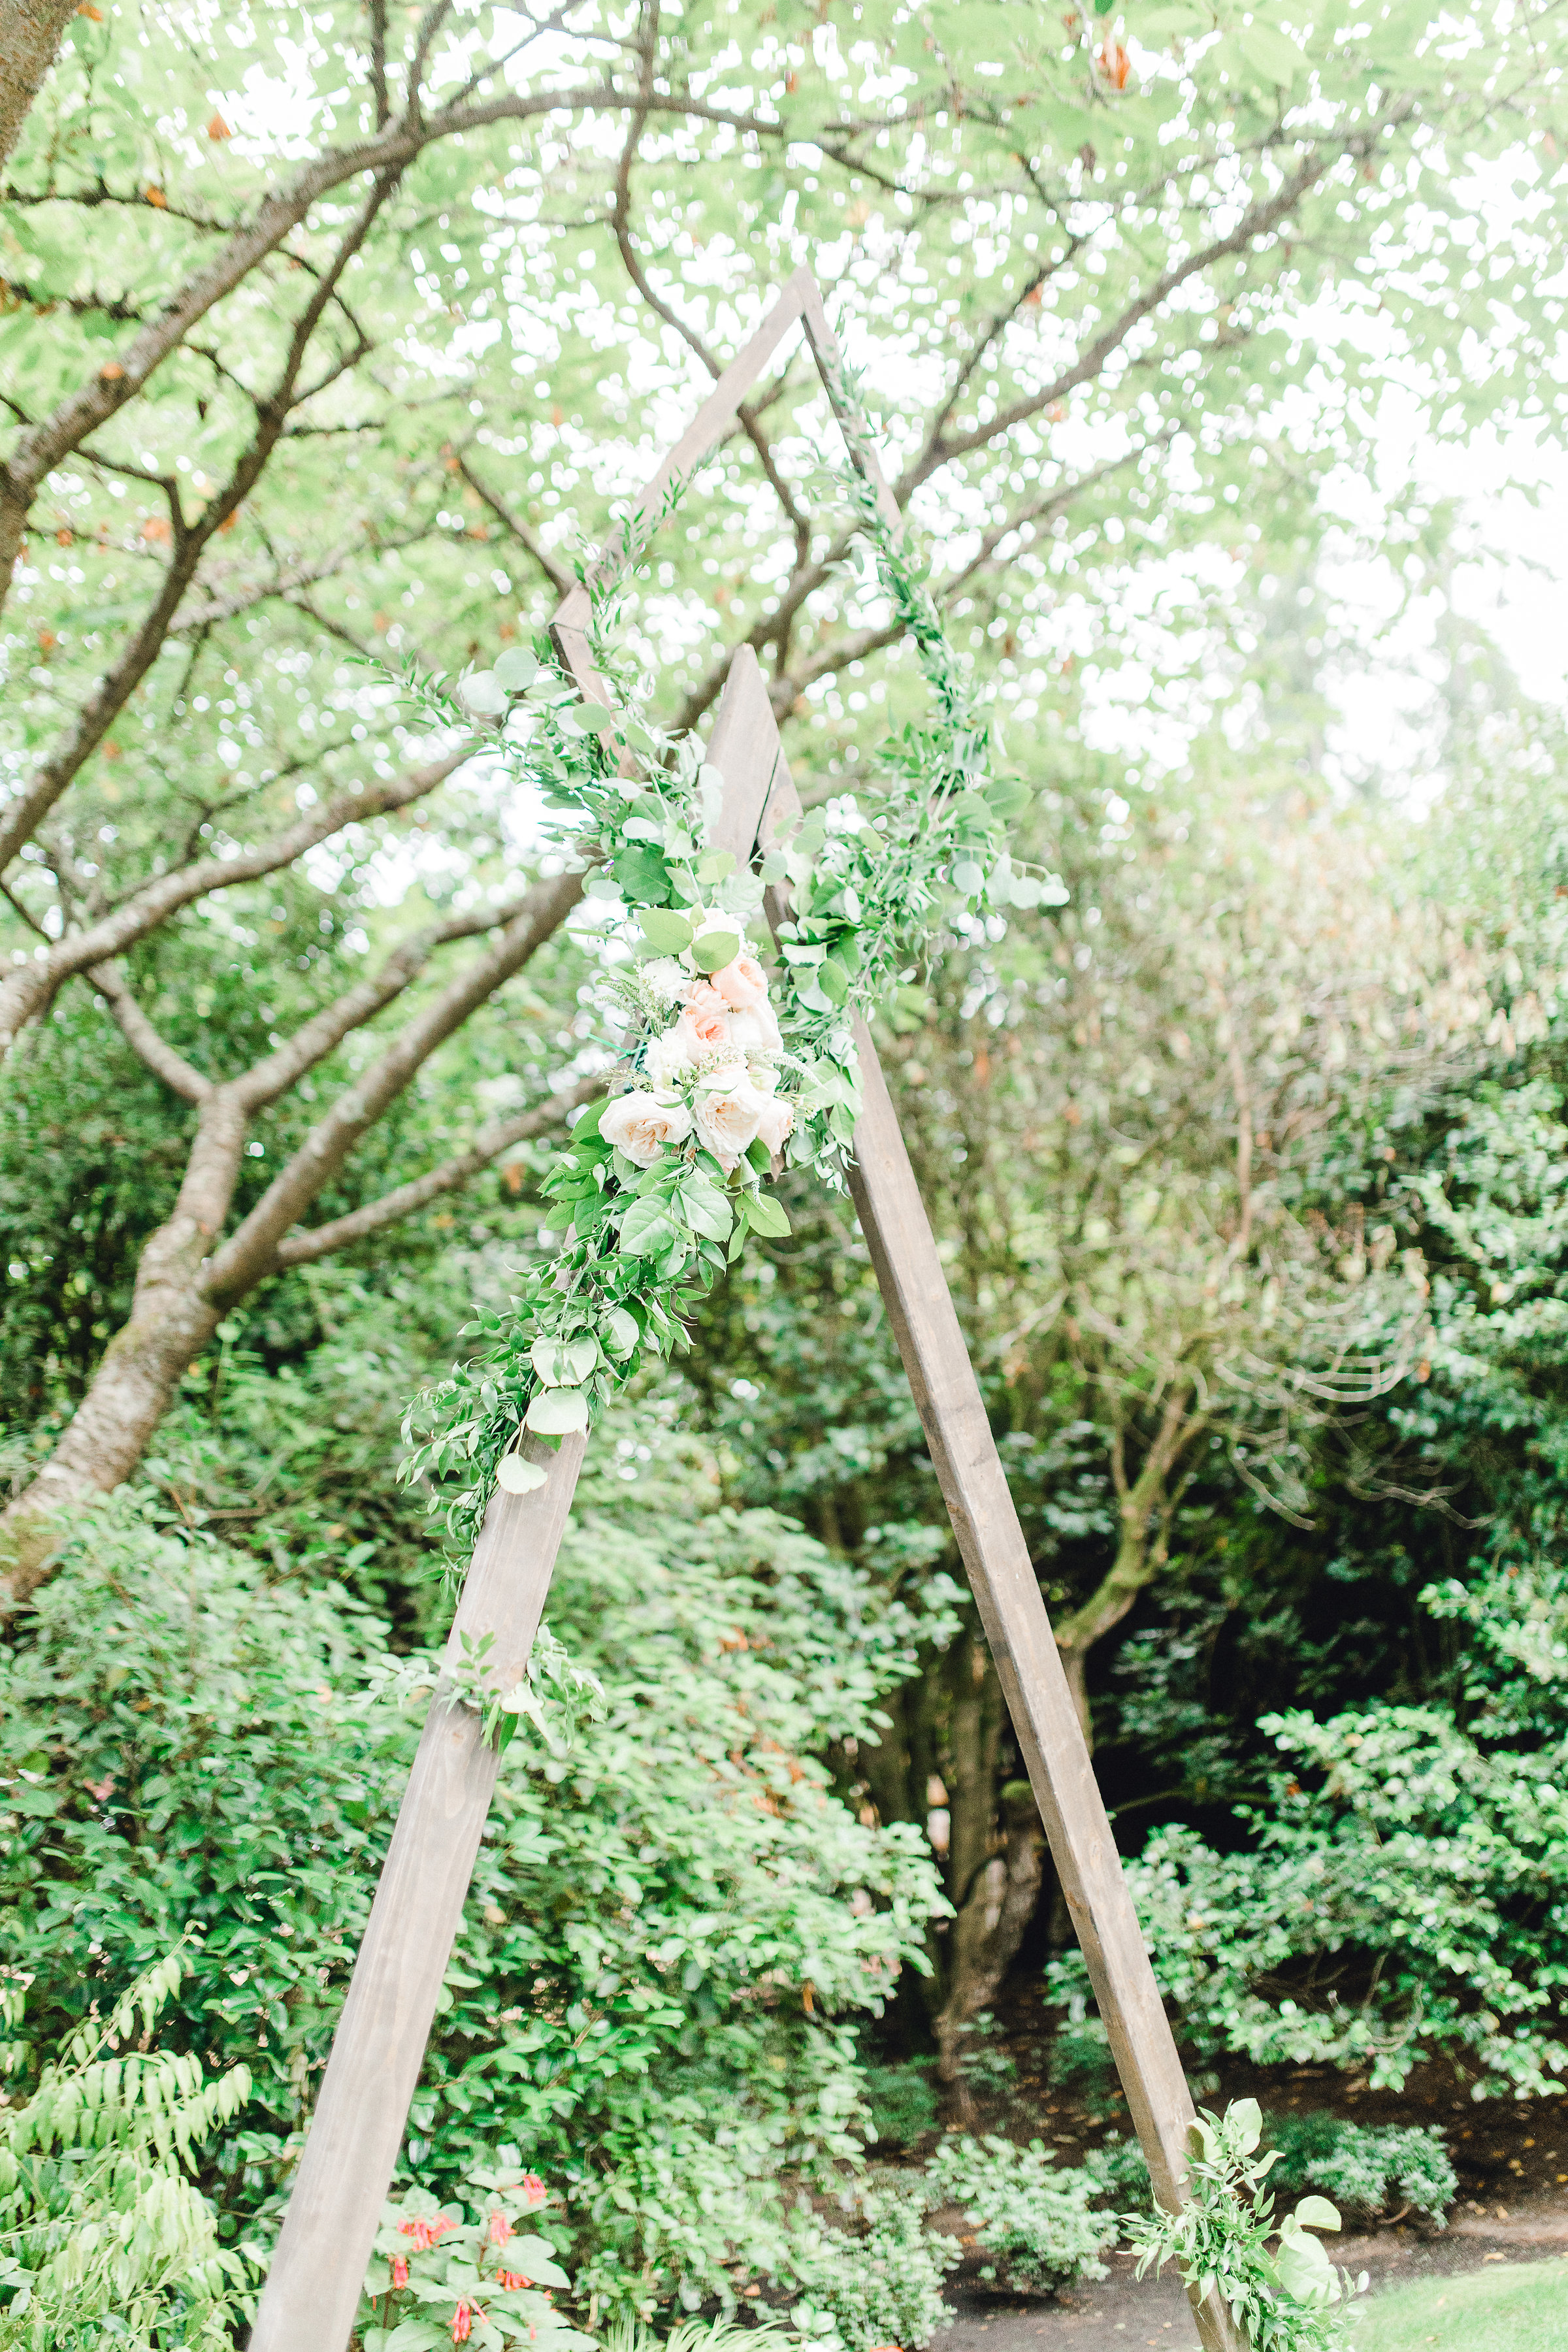 Seattle wedding, Washington wedding, bride and groom, PNW wedding, wedding inspiration, wedding flowers, Seattle bride, outdoor wedding, garden wedding, triangle arch, flower arch, Bixby + Pine